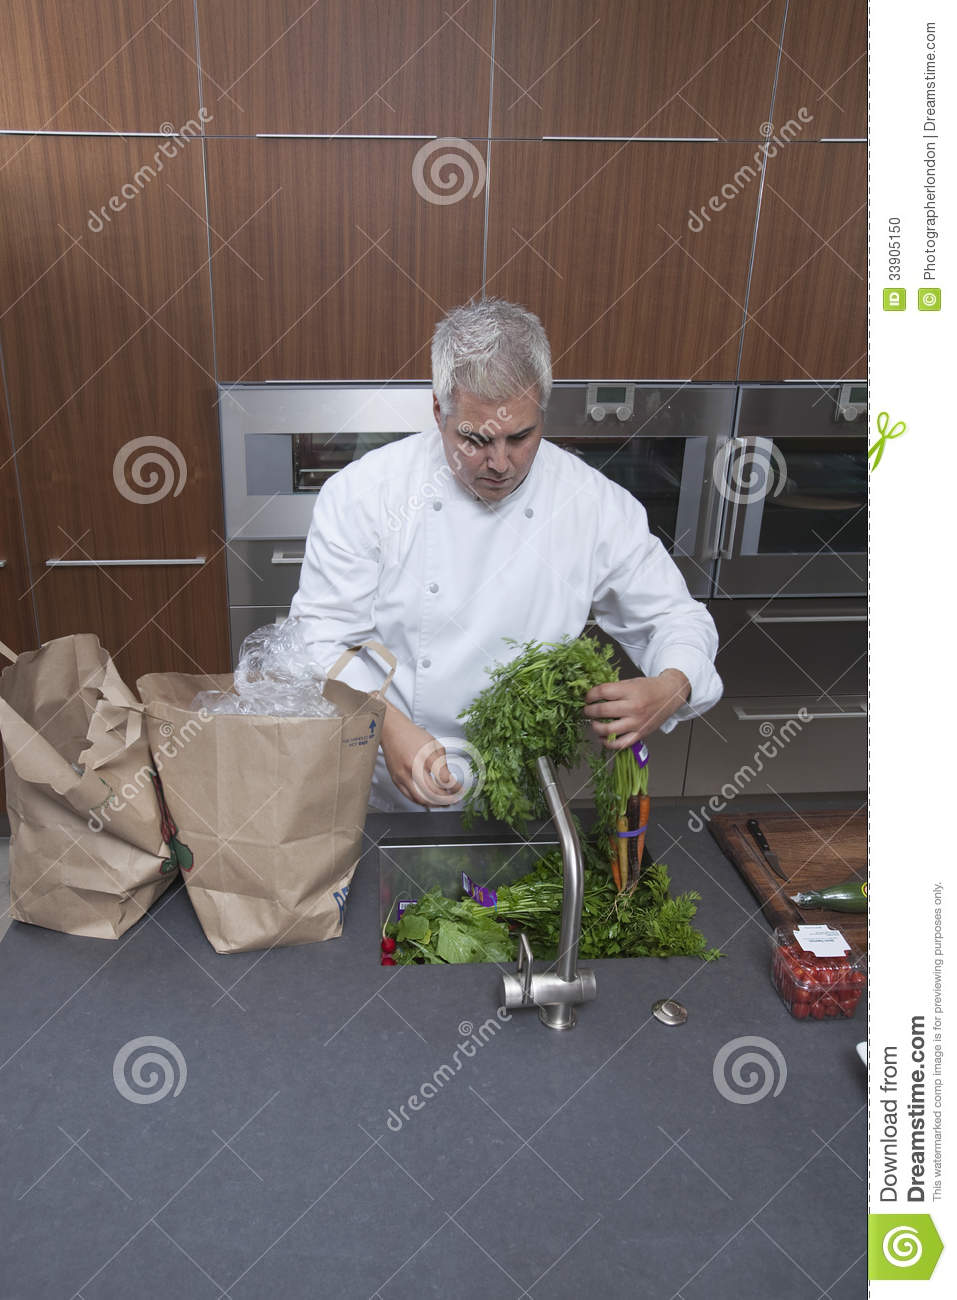 Chef Washing Vegetables In Kitchen Sink Stock Photo - Image: 33905150